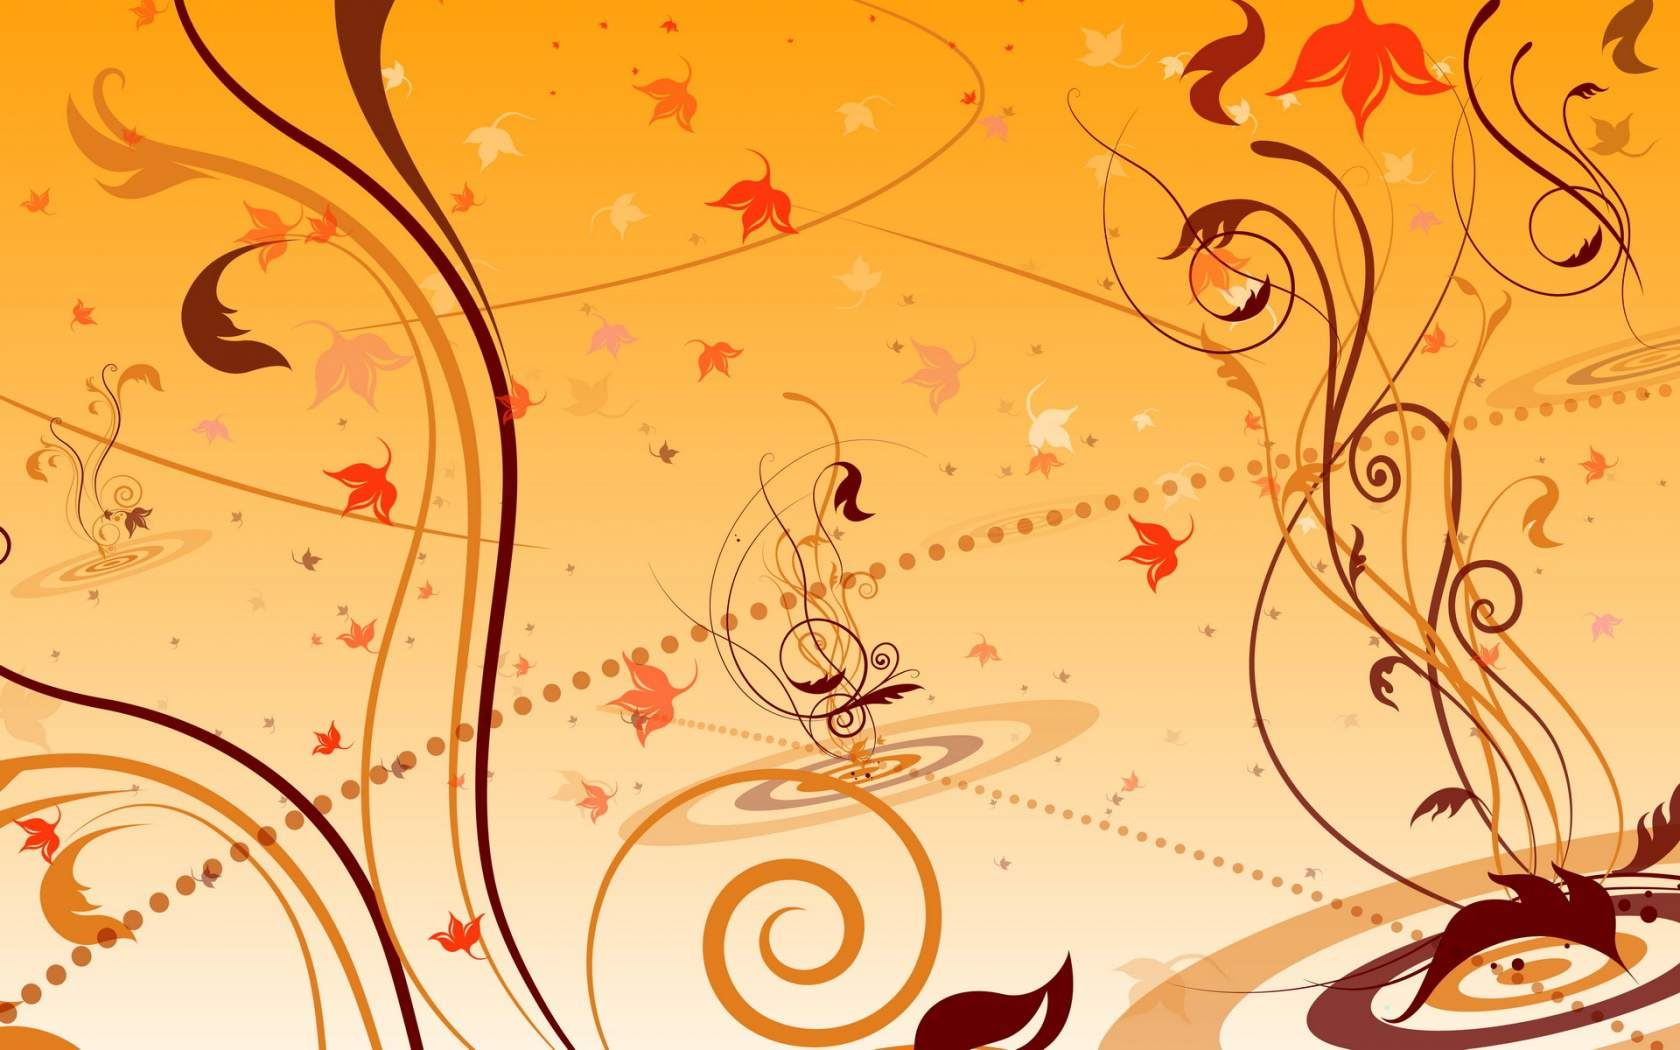 Free autumn wallpaper featuring an abstract fall image.